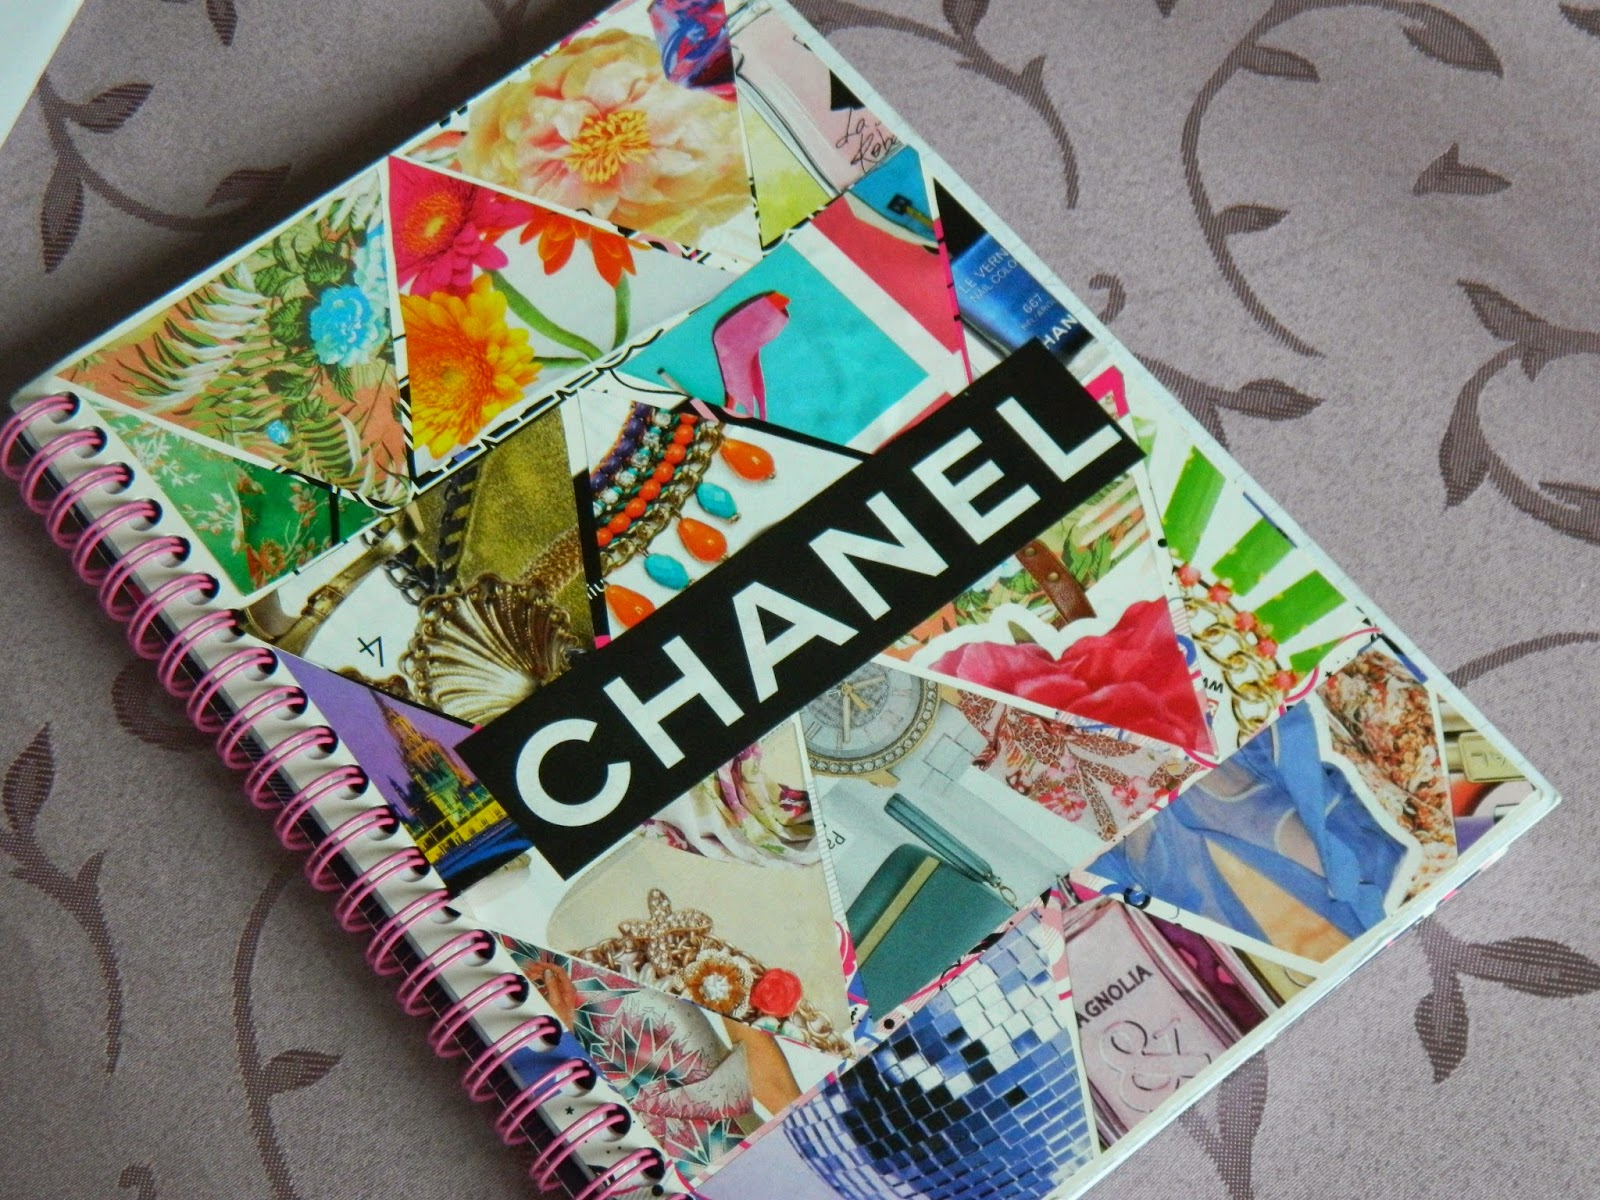 Glamcouture diy tumblr inspired notebook cover stickers for Back to school notebook decoration ideas